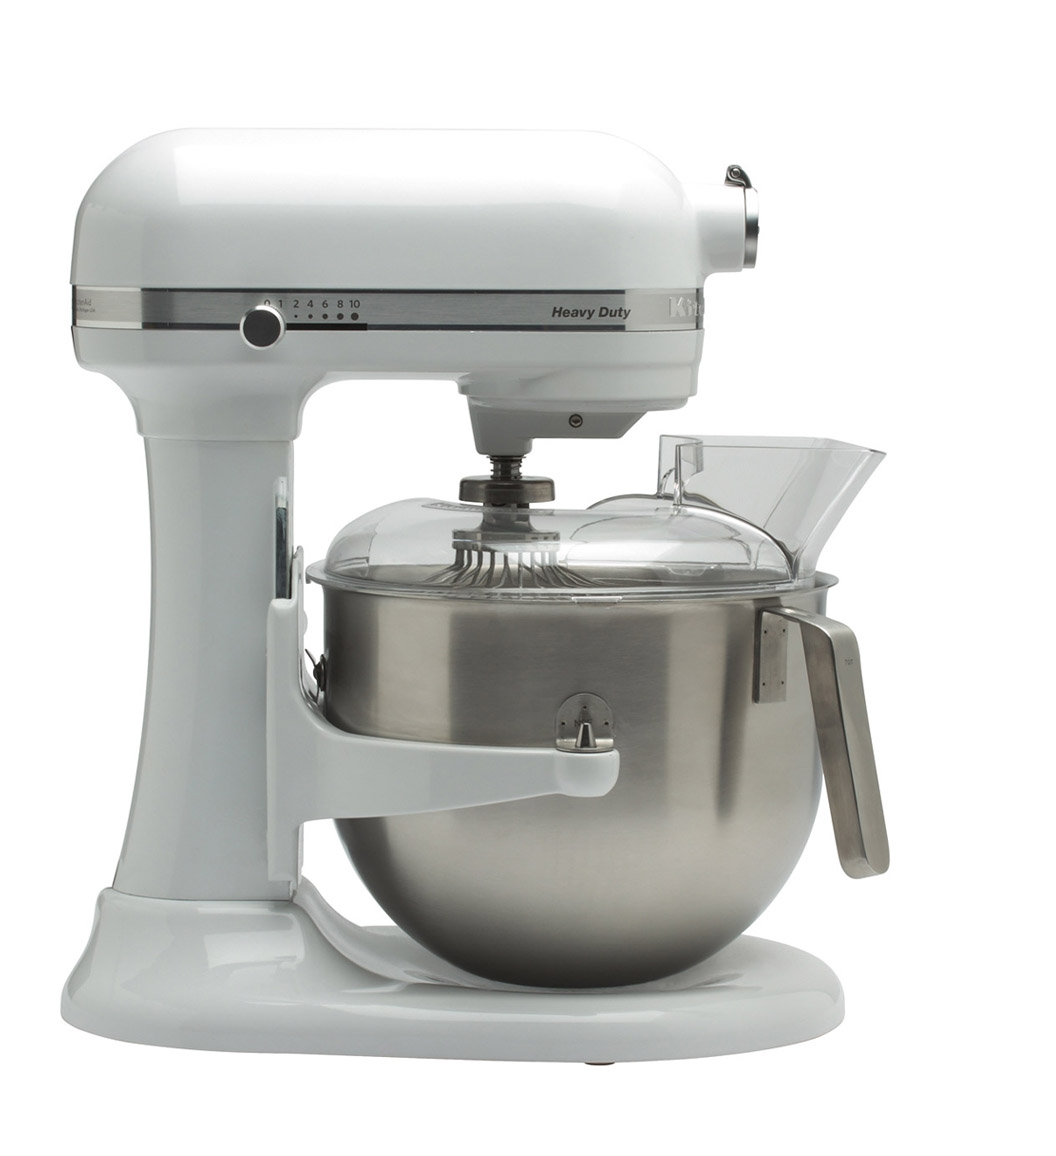 Kitchenaid robot Heavy Duty 6,9 l 5KSM7591 biely